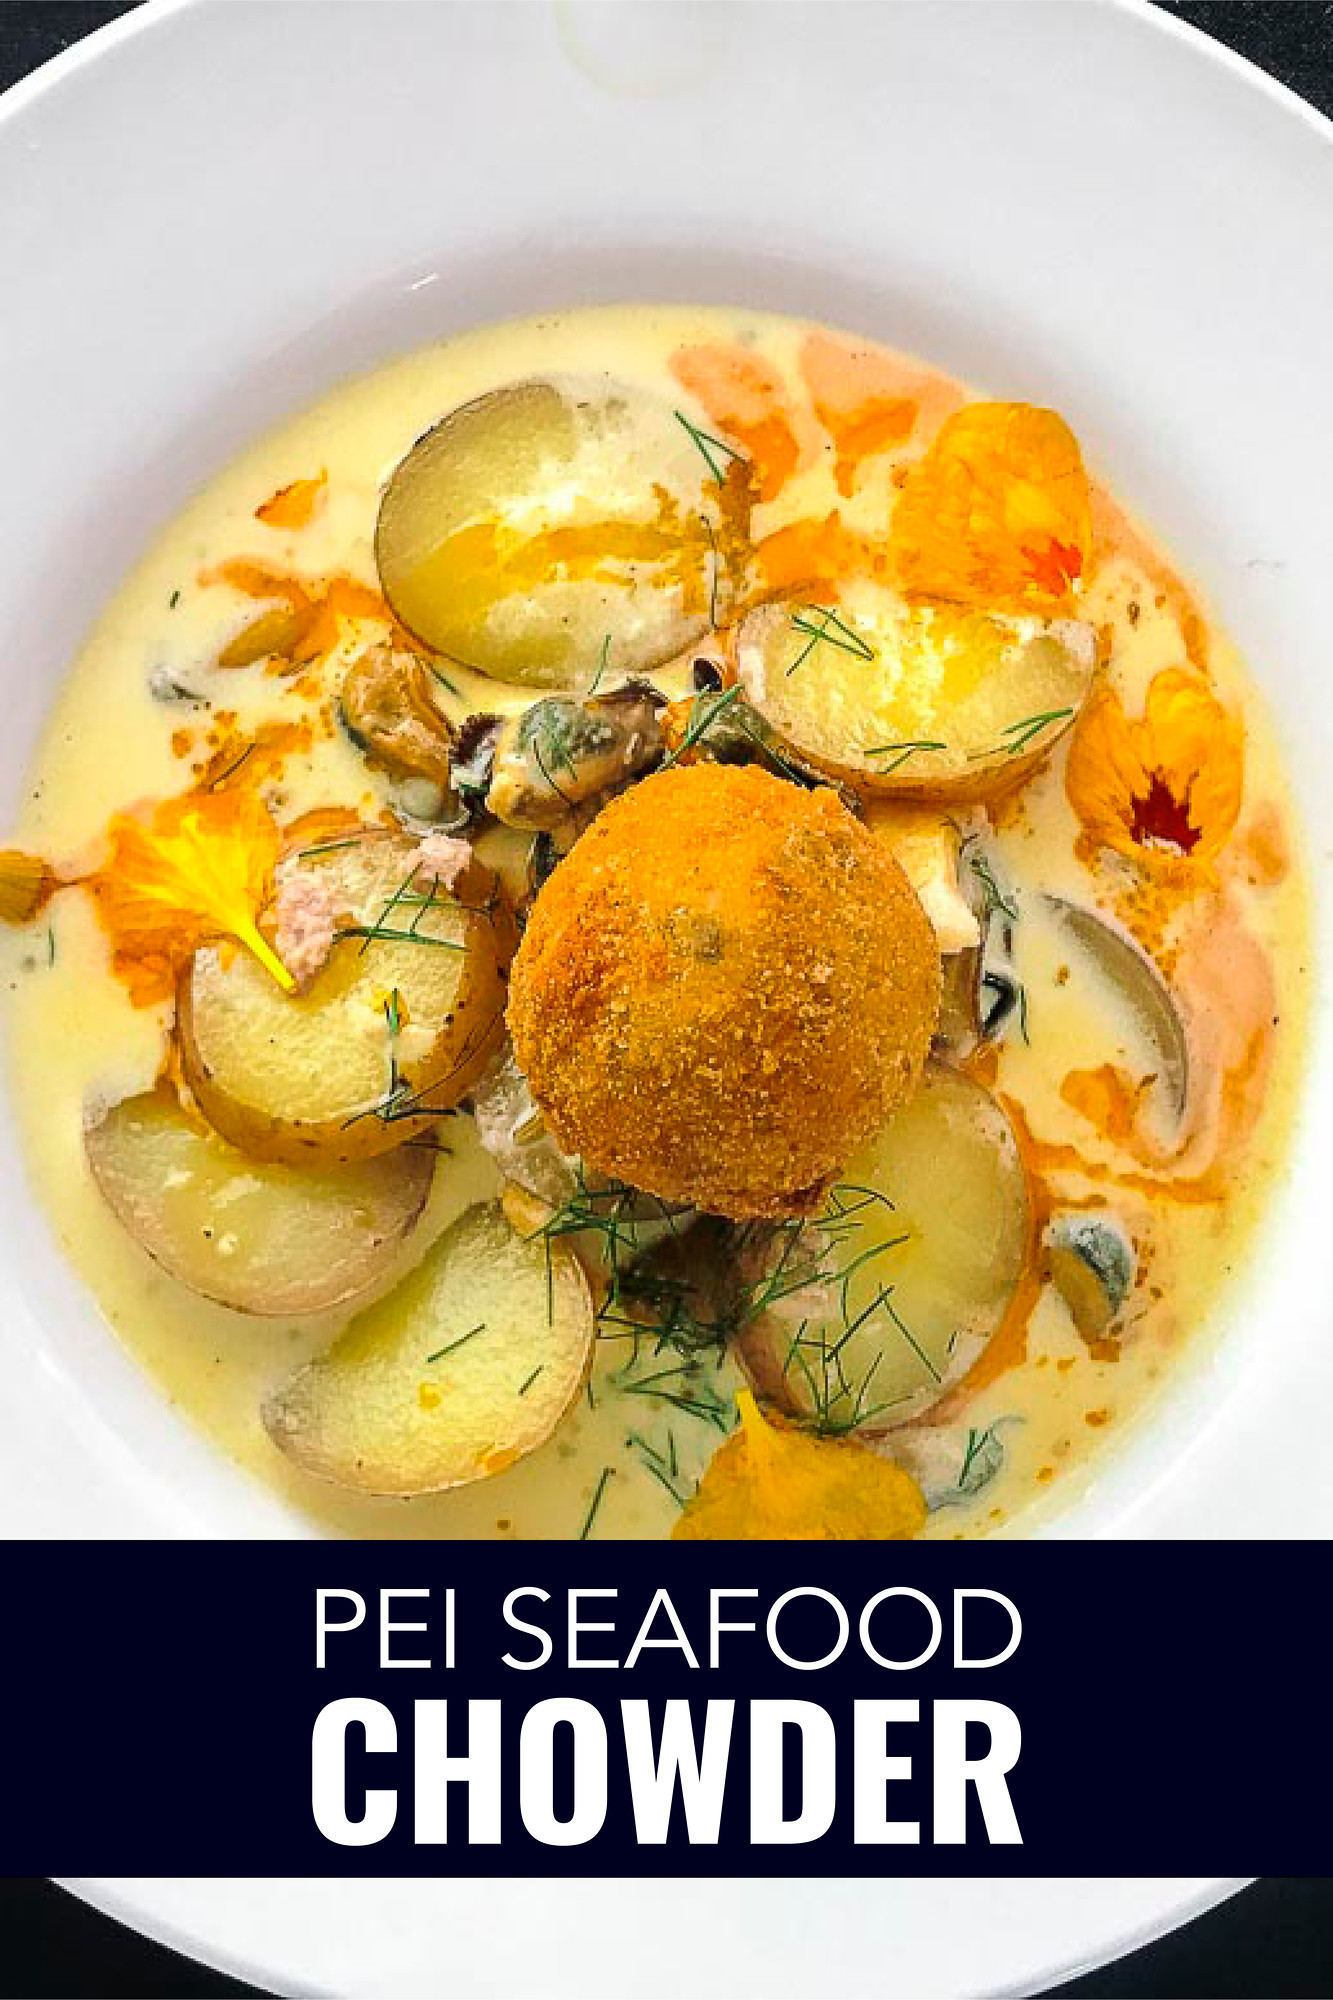 Classic PEI seafood chowder with a delicious Italian twist of sausage and lobster arancini.